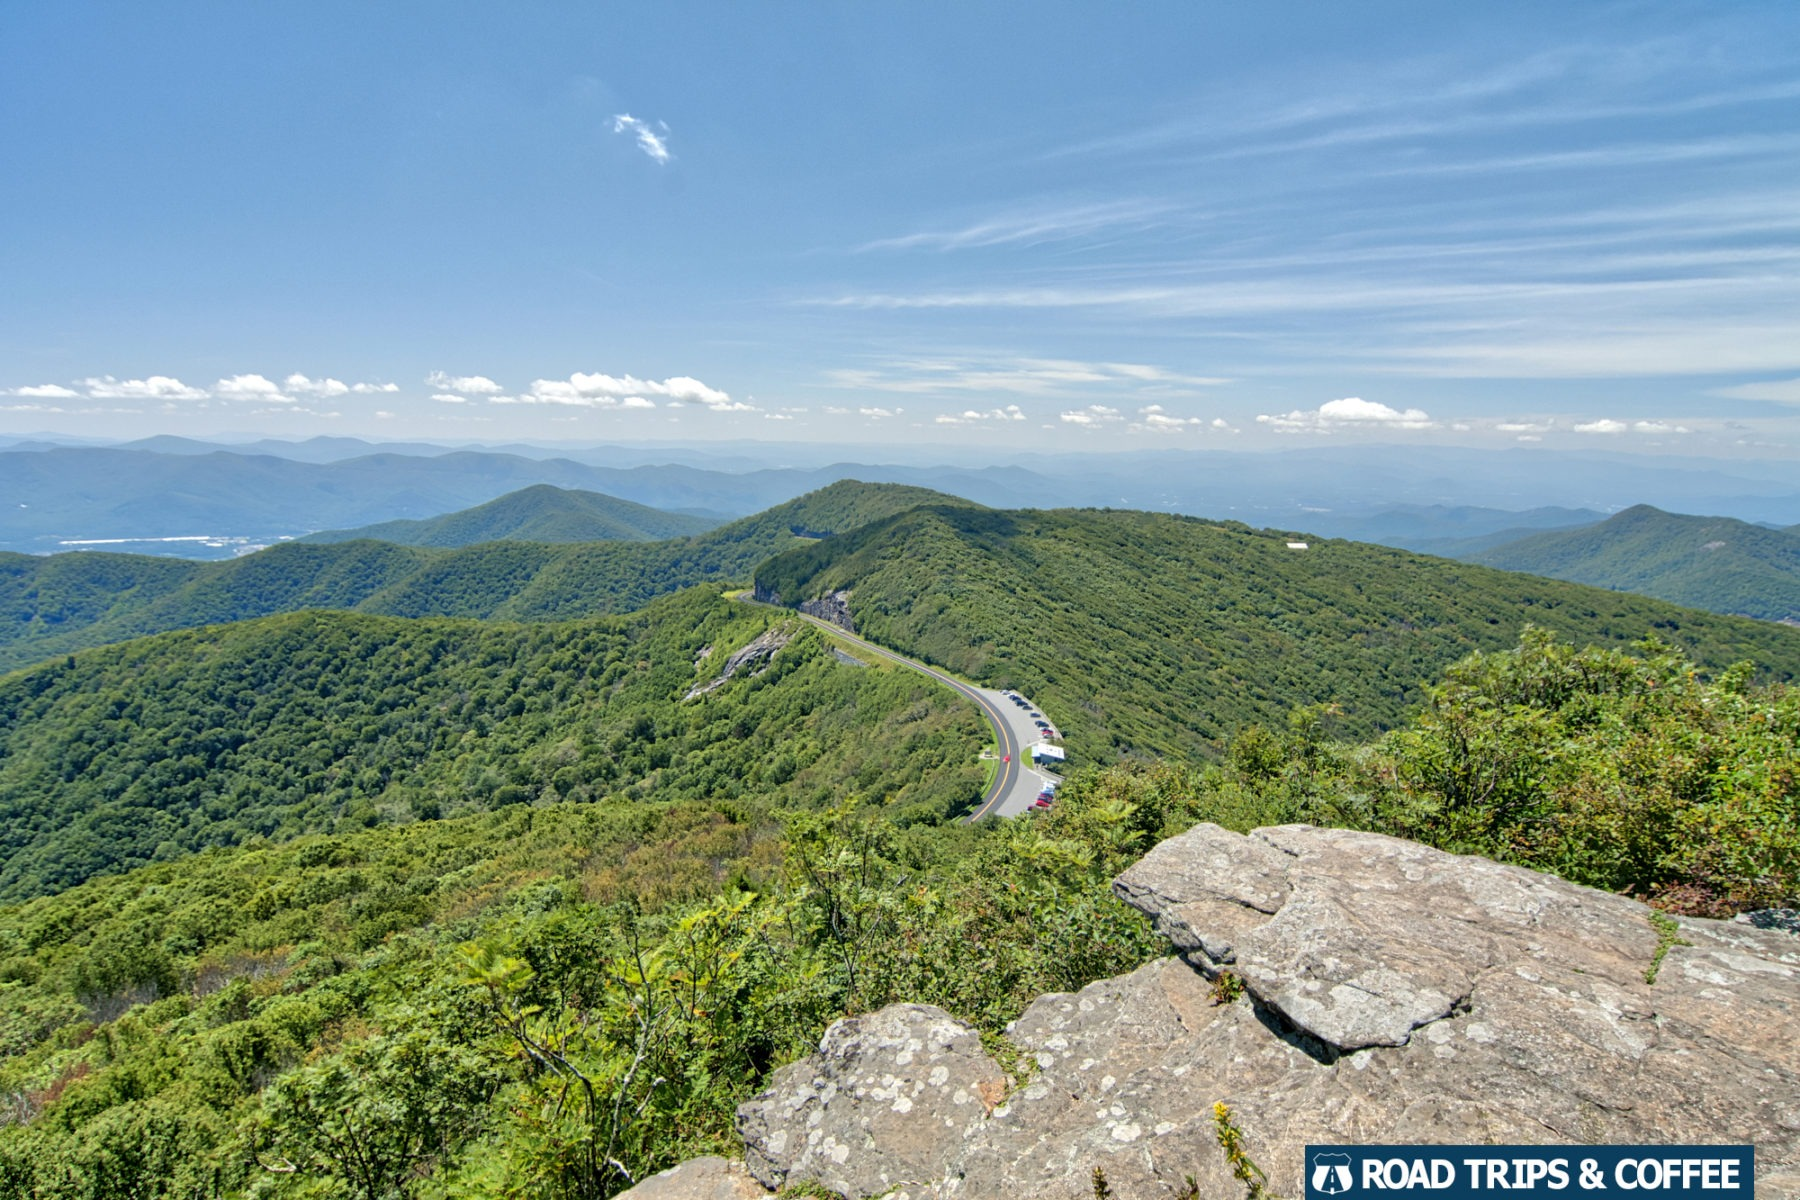 The view from the top of Craggy Pinnacle at Craggy Gardens on the Blue Ridge Parkway in North Carolina